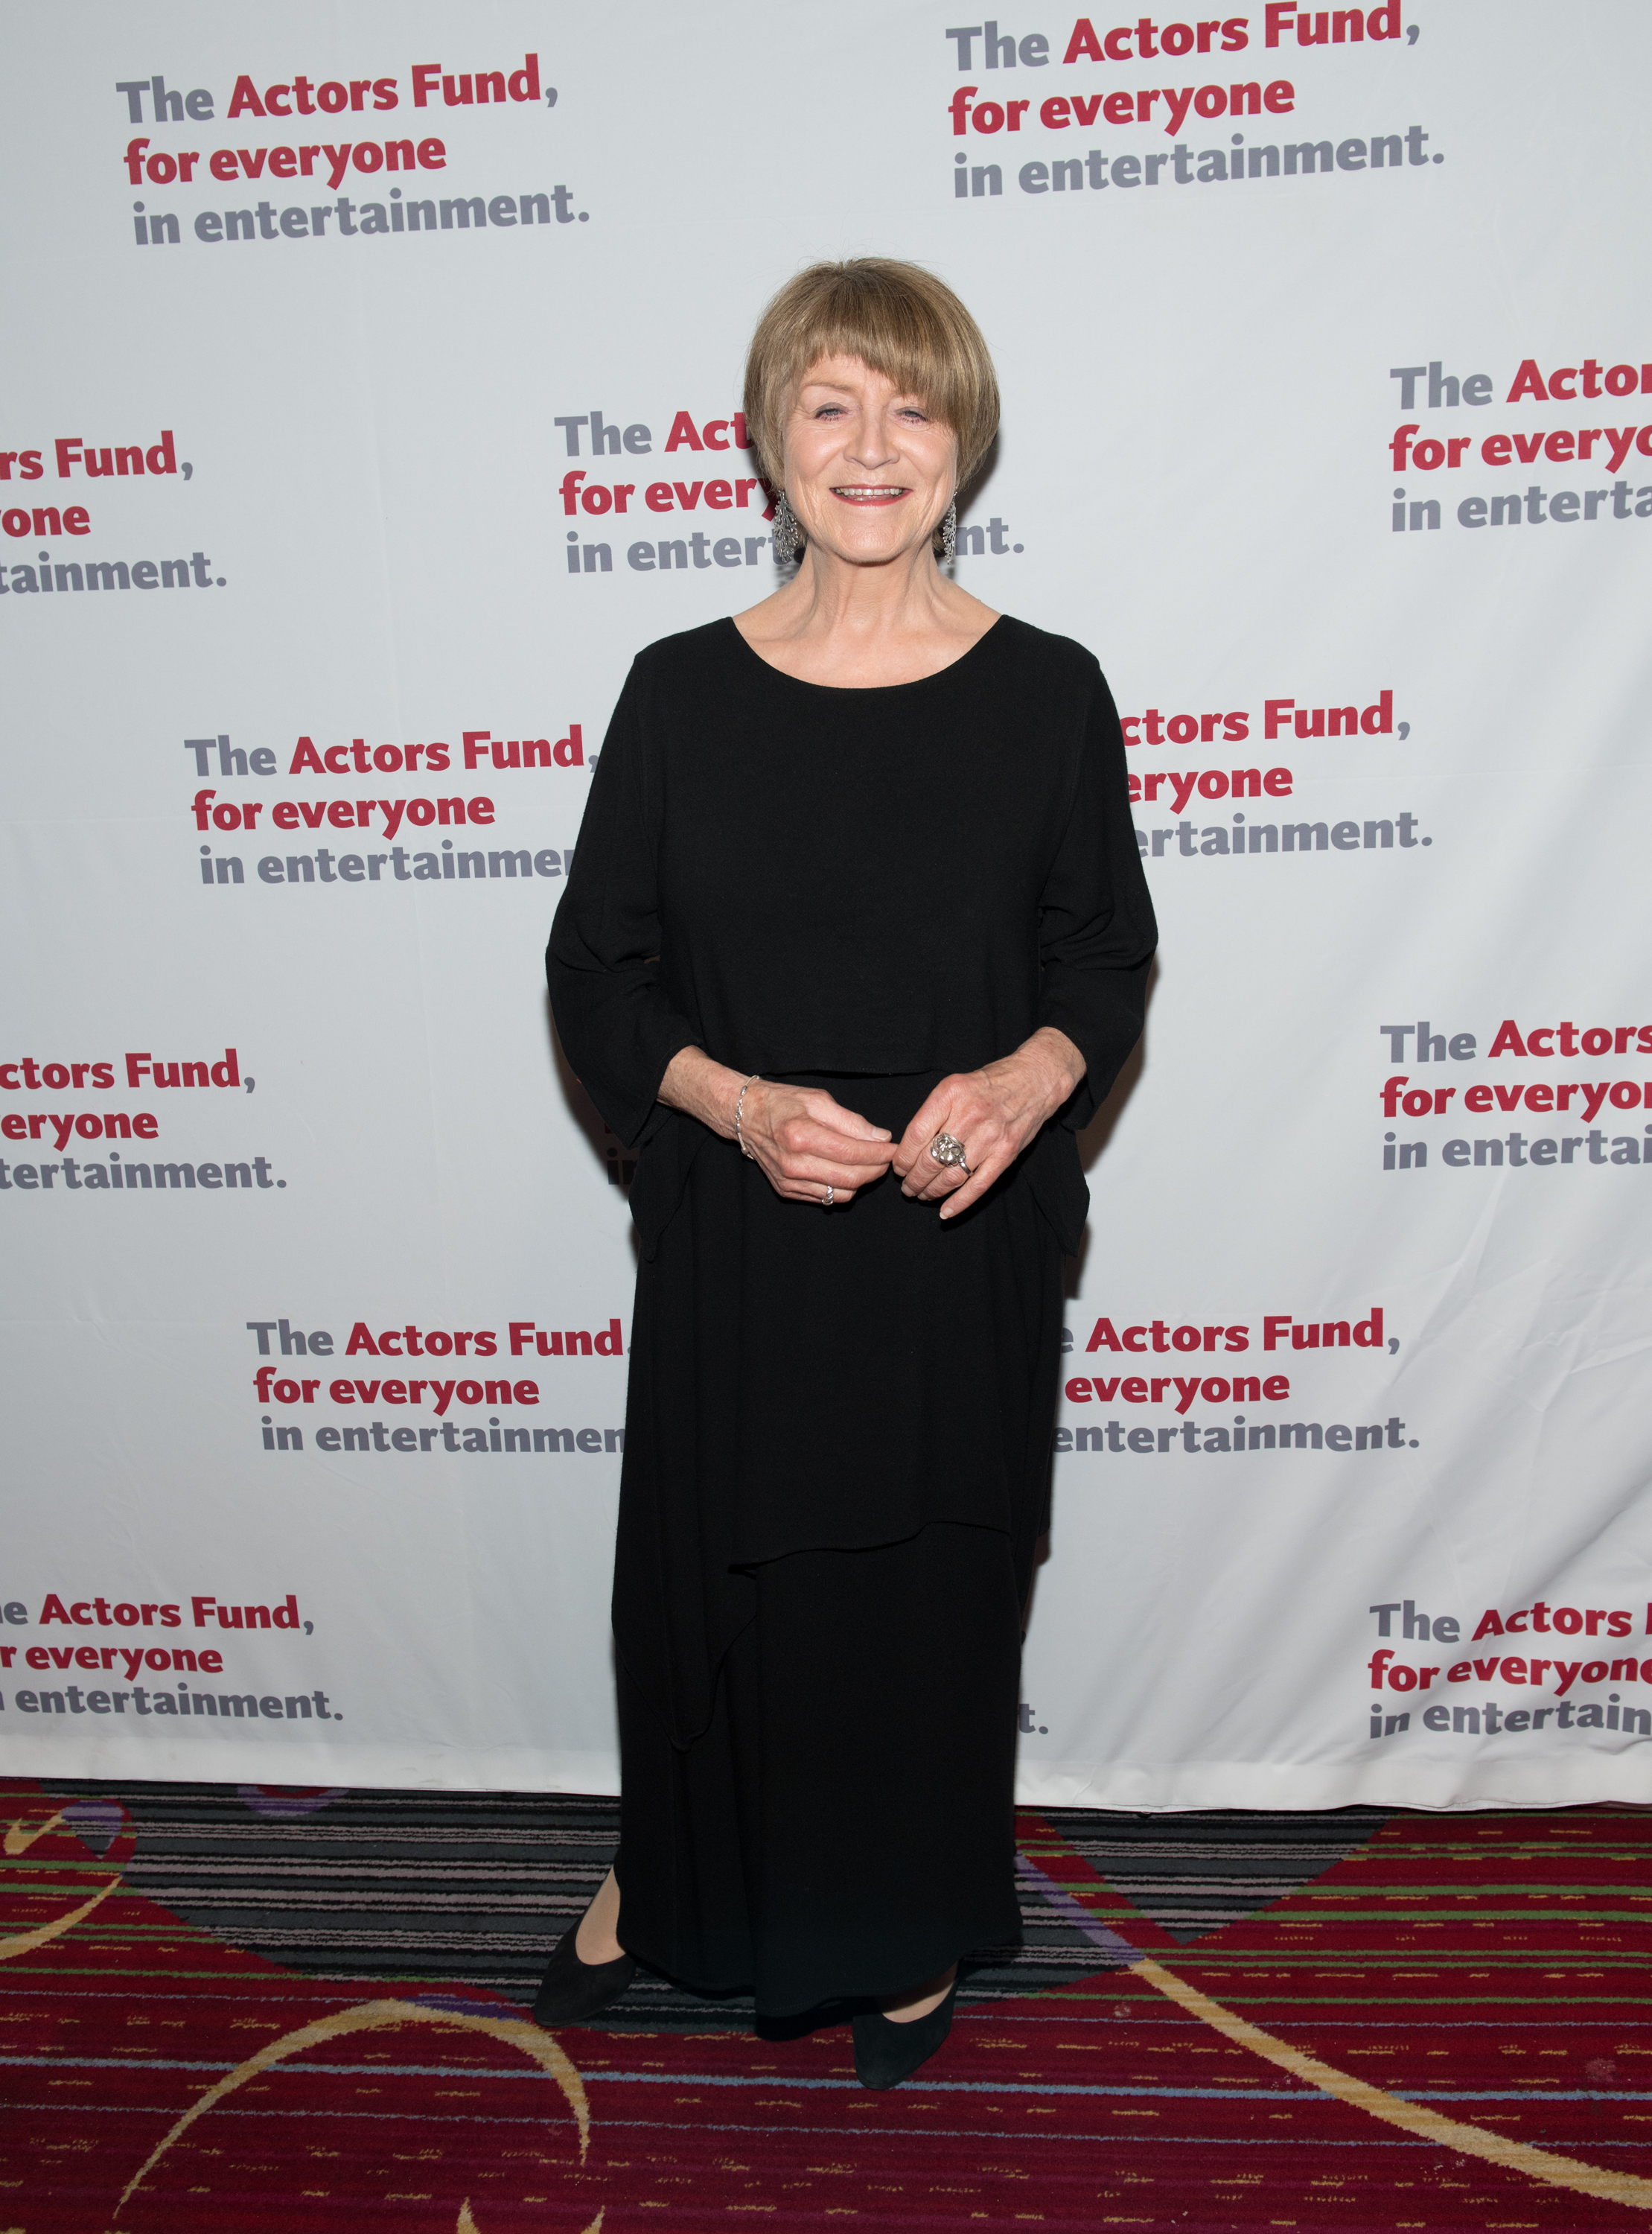 Susan Brown attends The Actors Fund 2018 Gala at Marriott Marquis Times Square on May 14, 2018 in New York City.